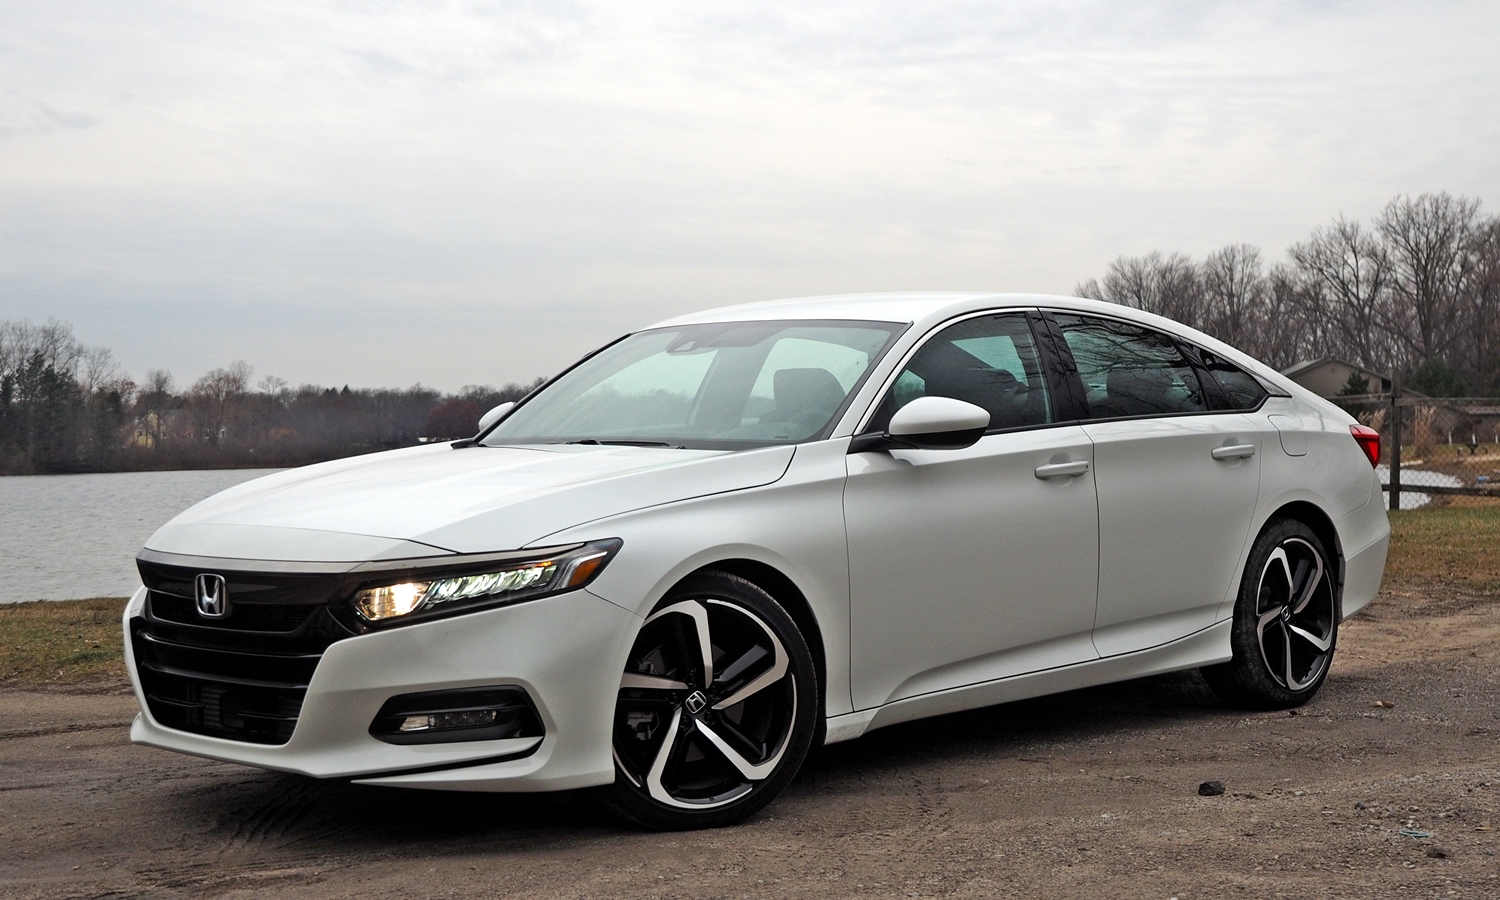 2018 Honda Accord Sport front quarter view